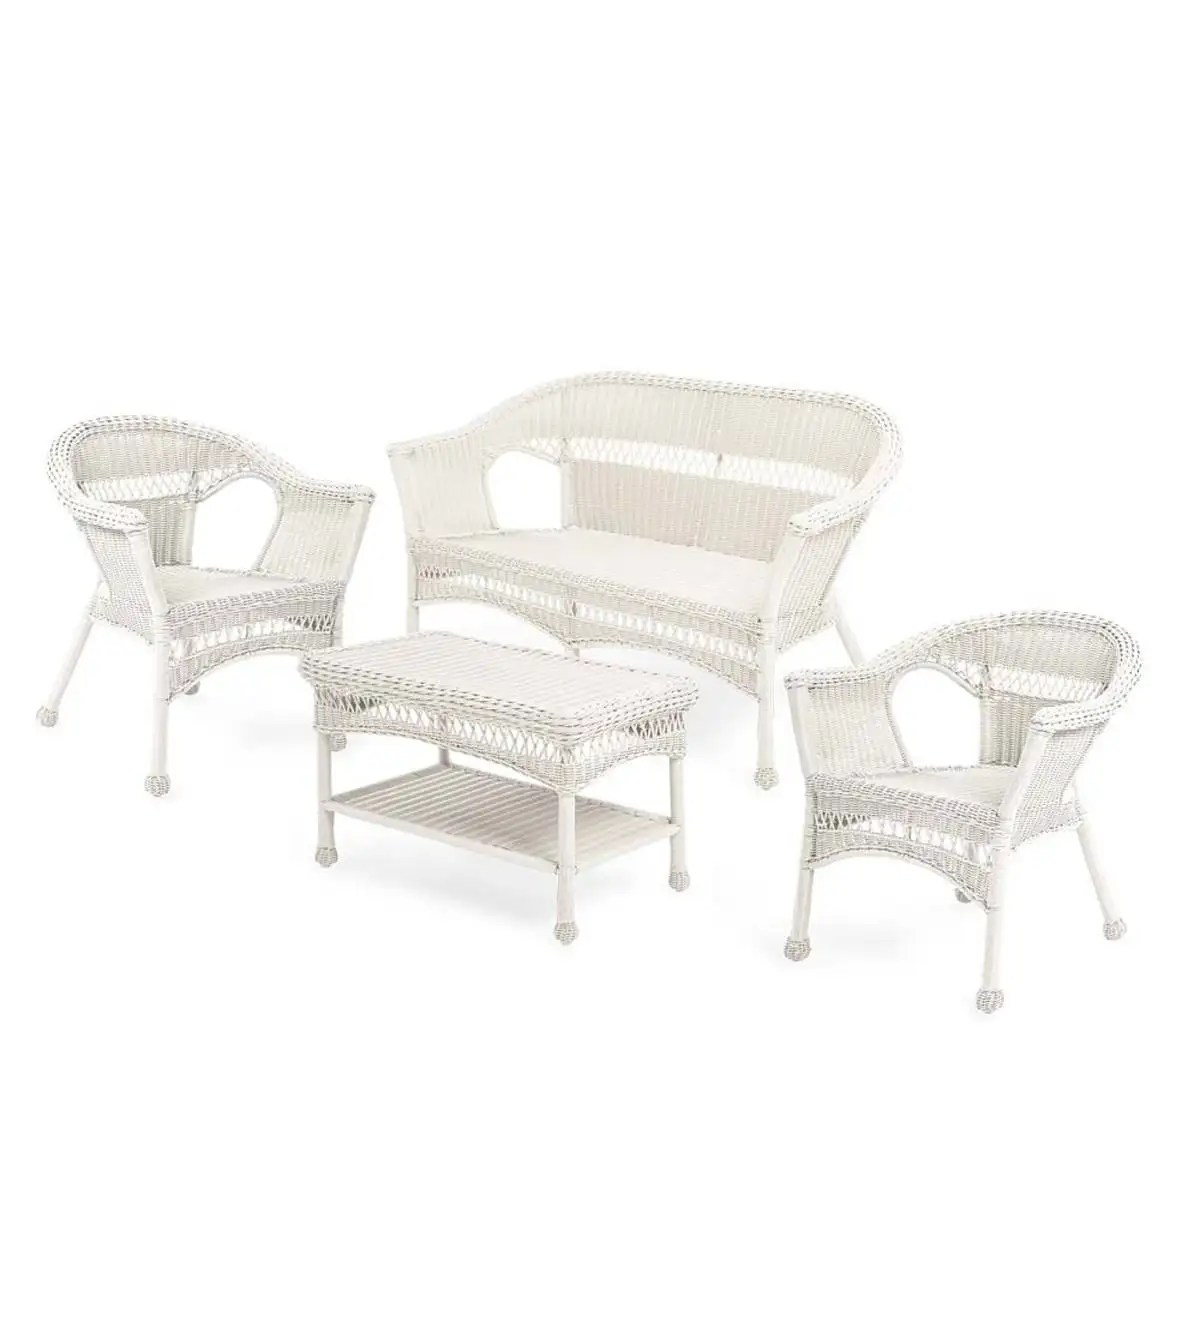 resin table and chairs set bath chair for babies easy care wicker love seat coffee